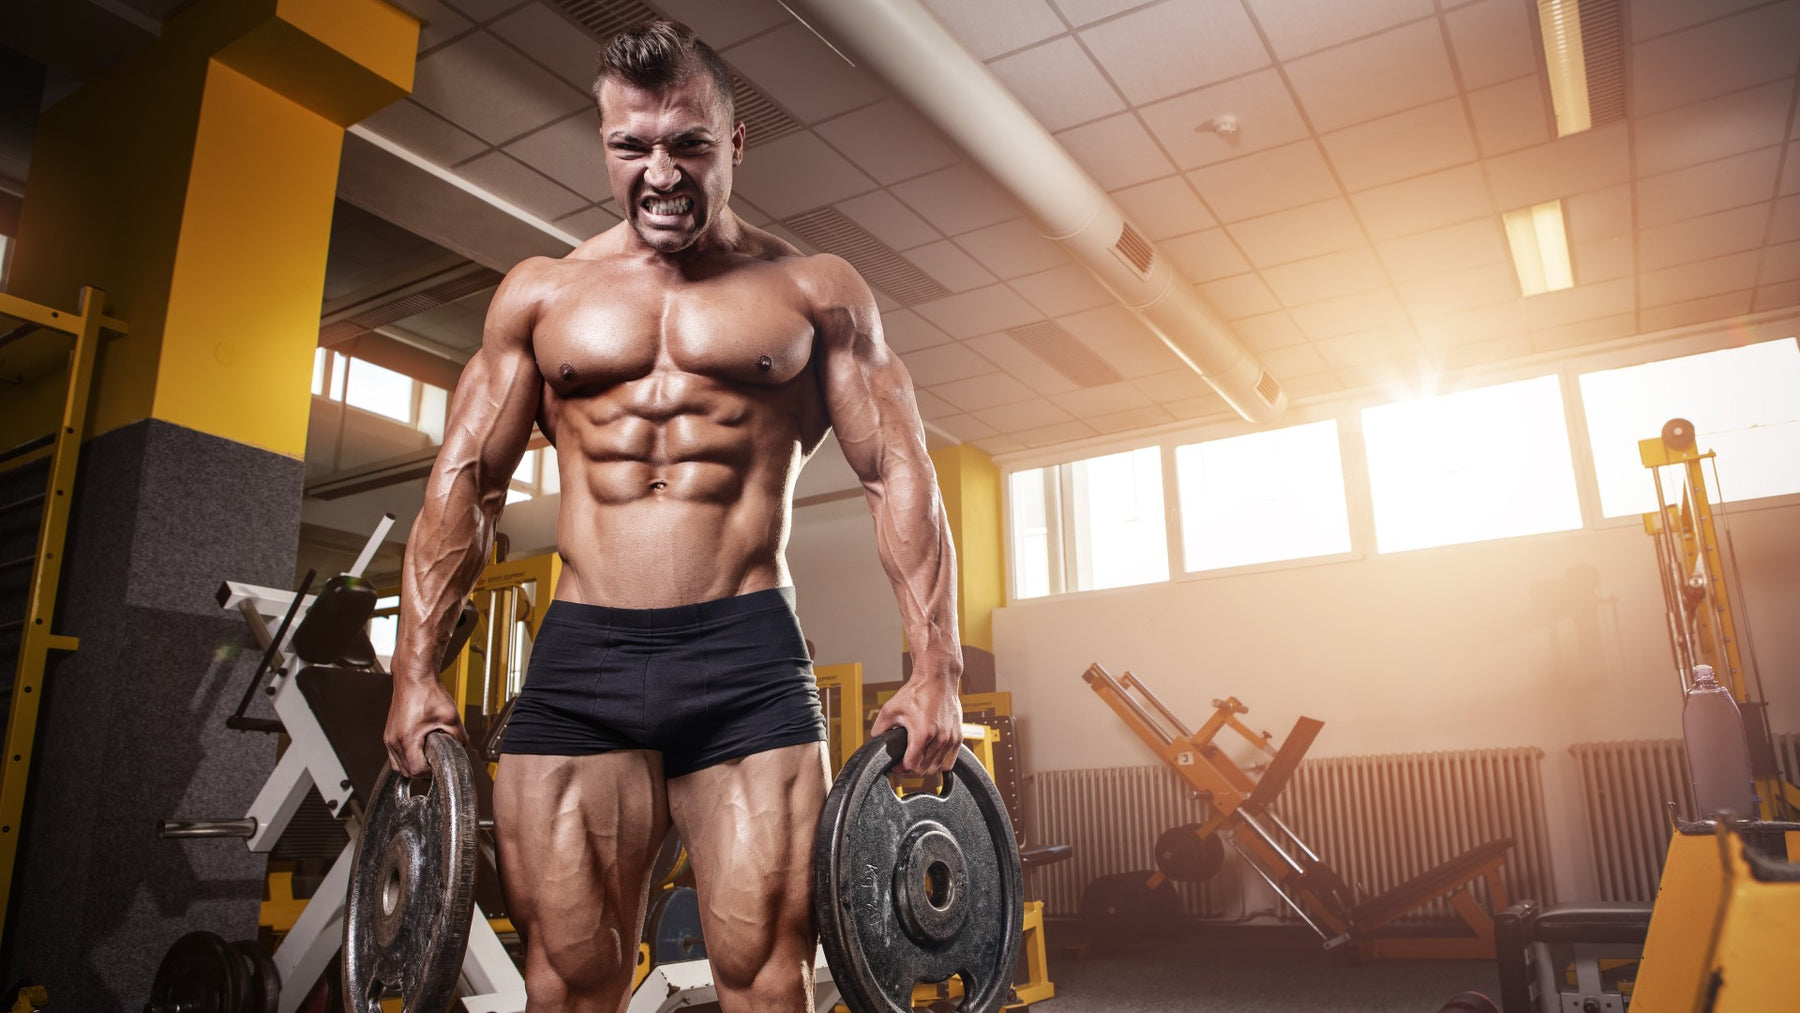 Build an Ideal Physique Using This X-Frame Aesthetic Workout